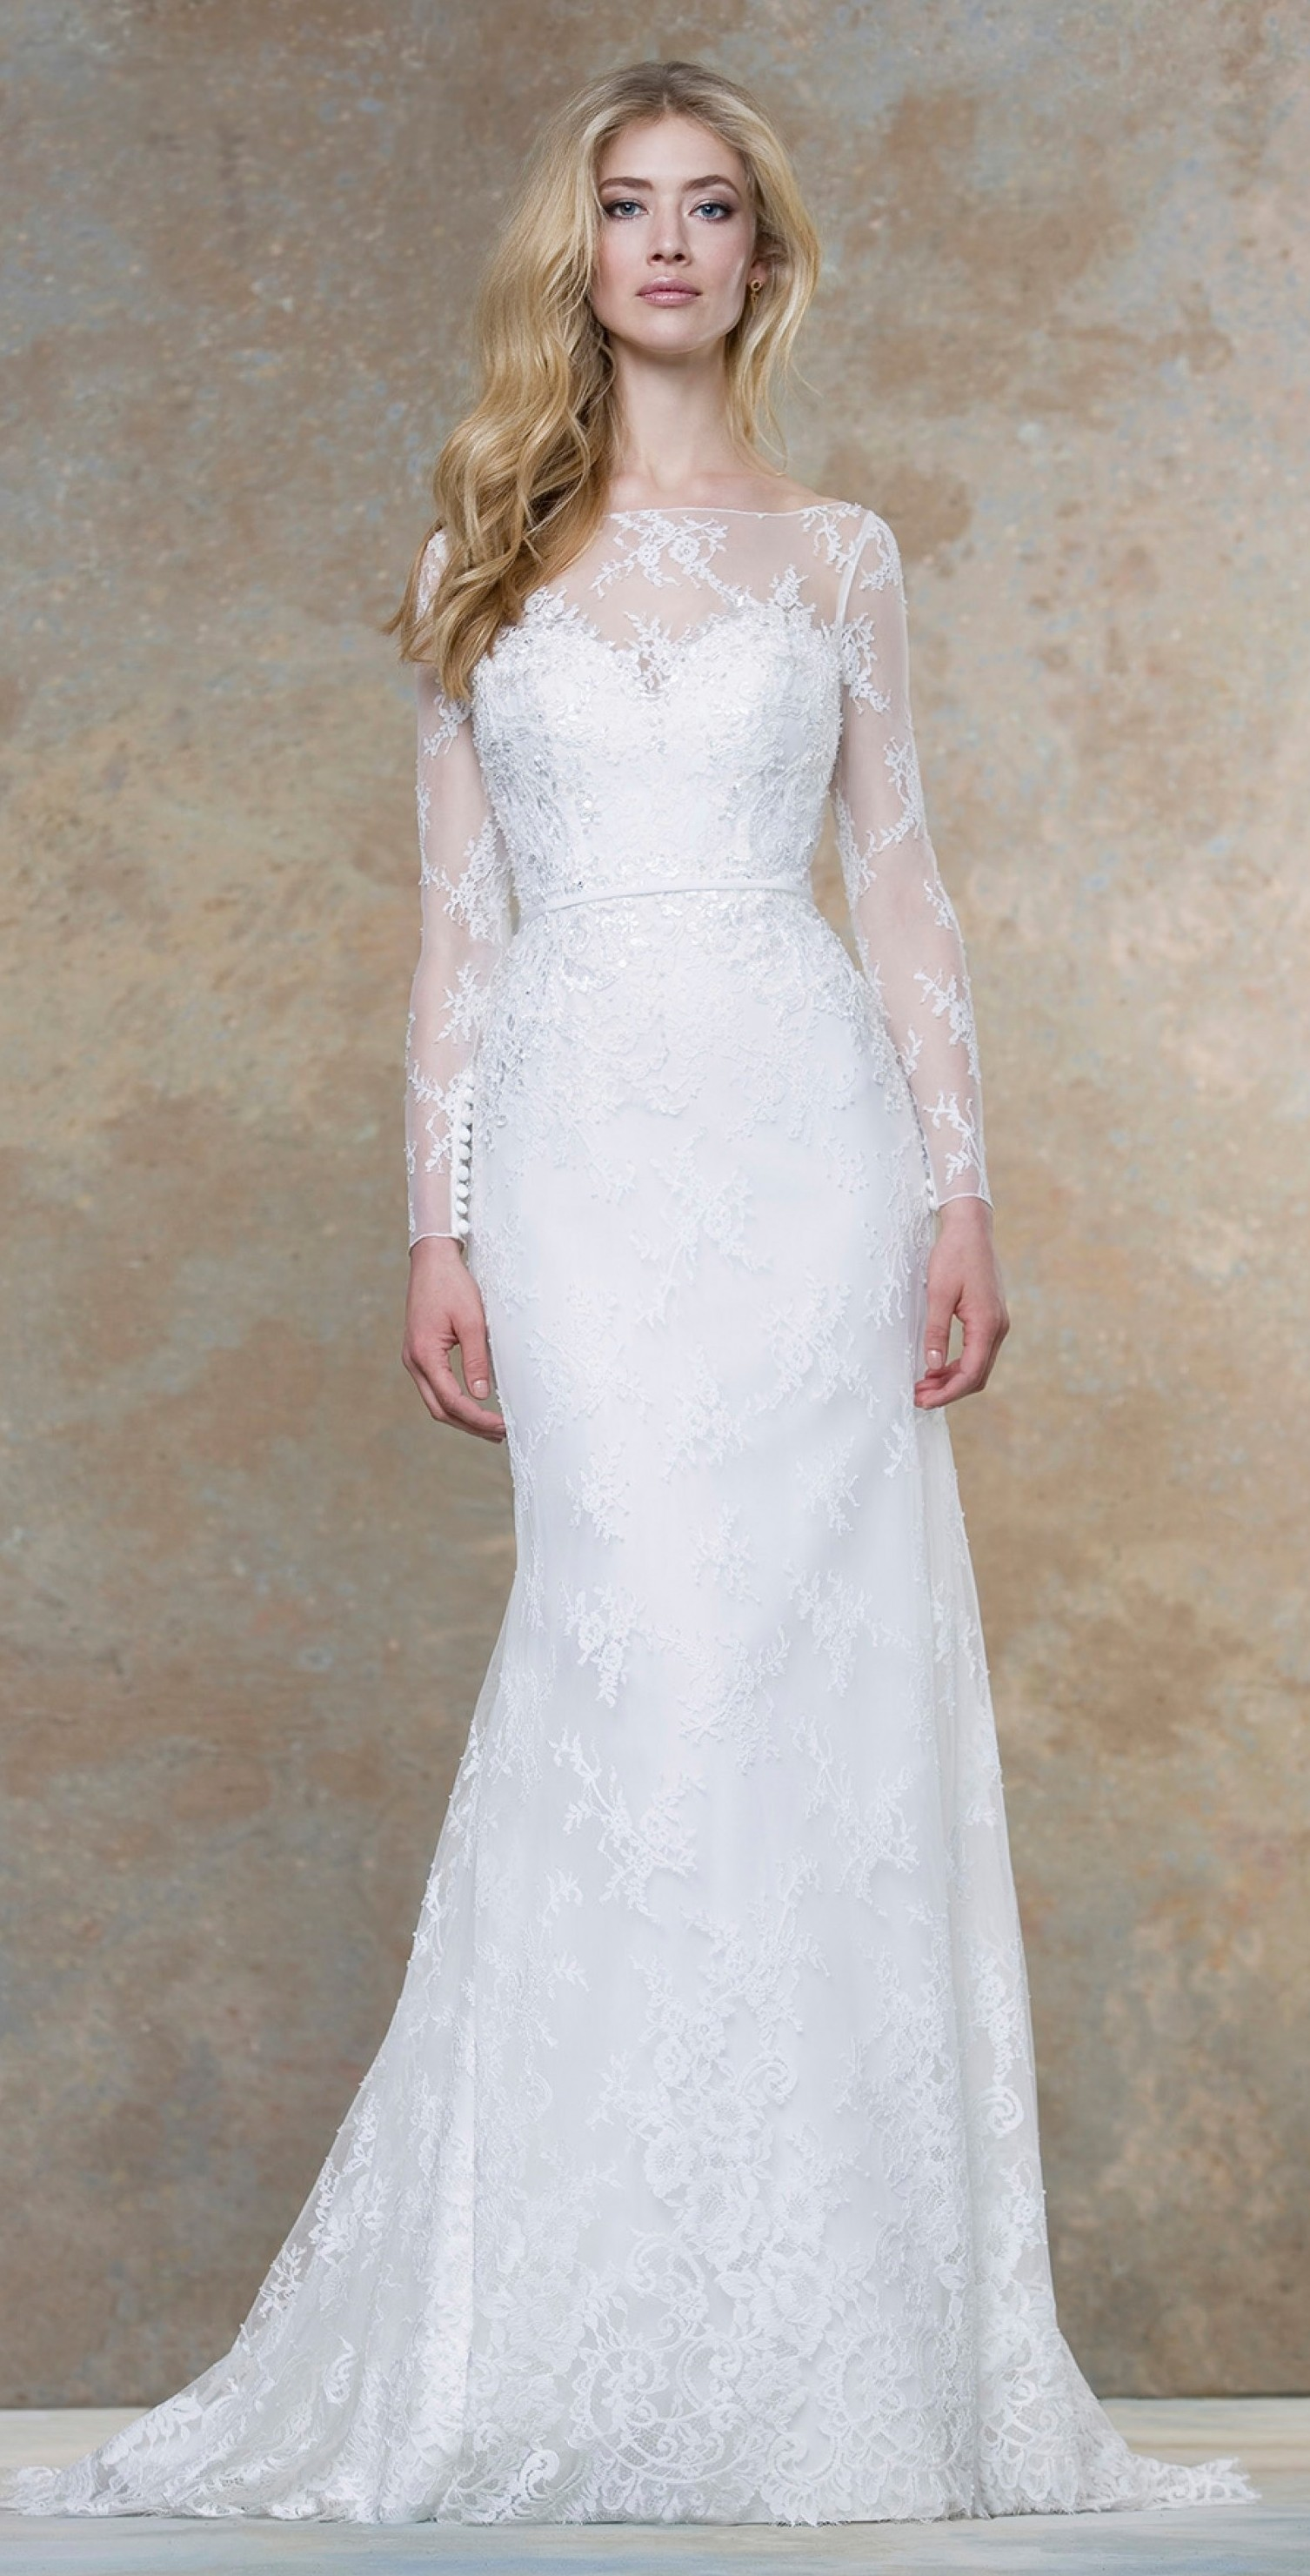 Ellis bridals wedding dresses gowns veils and for Wedding dress in dubai